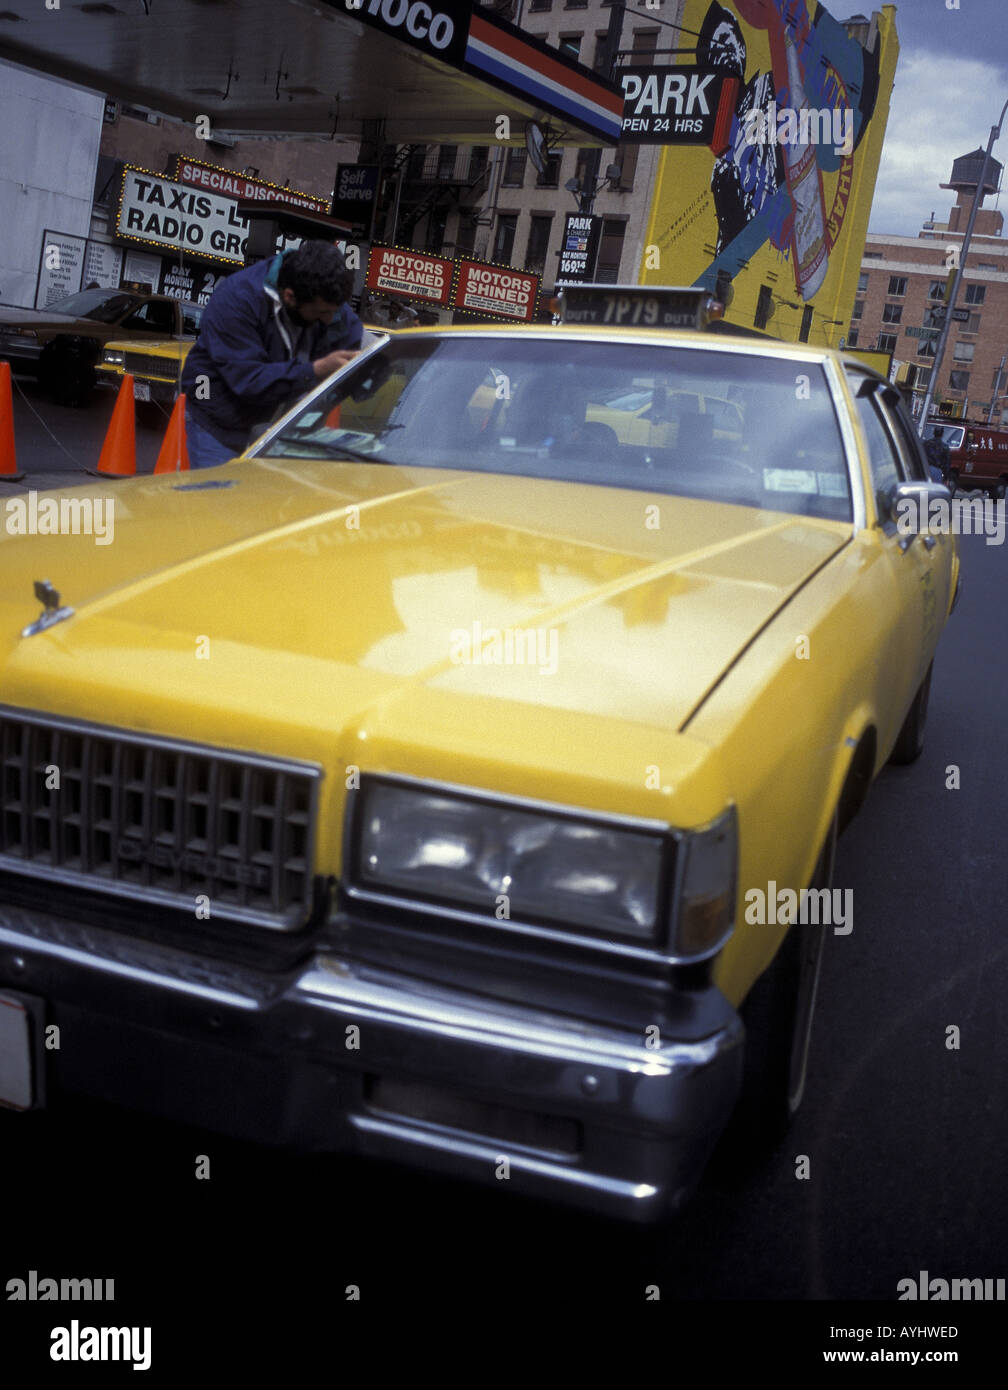 Taxi New York City - Stock Image